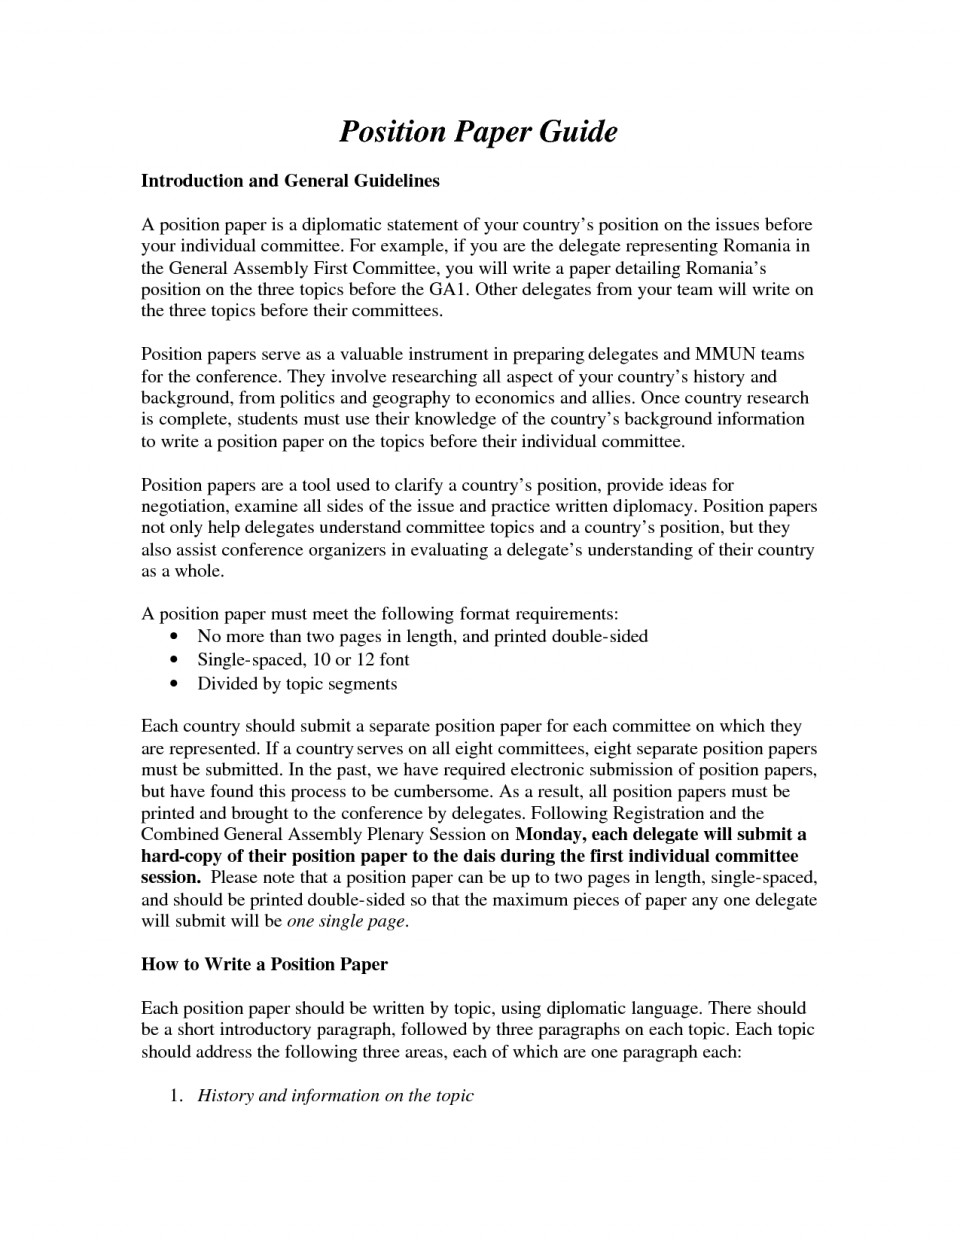 011 Research Papers Topics Paper Proposal Example 343593 Phenomenal For High School Students About Elementary Education Hot In Computer Science 960